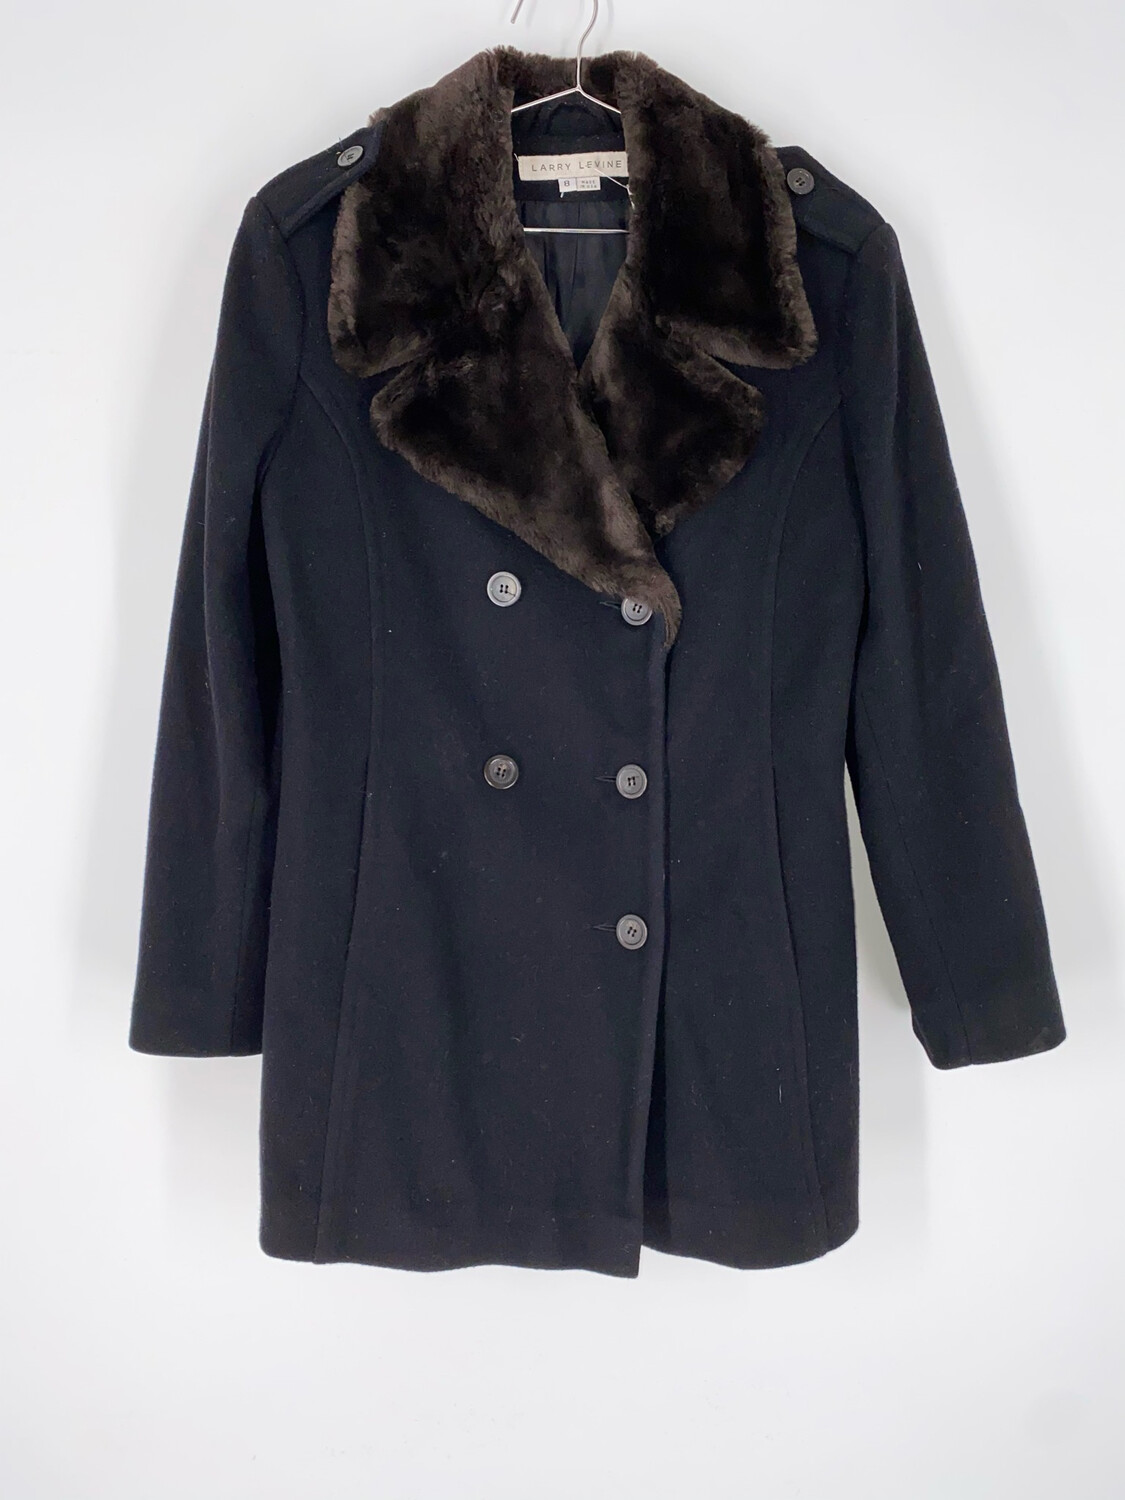 Larry Levine Wool Coat With Brown Faux Fur Collar Size M